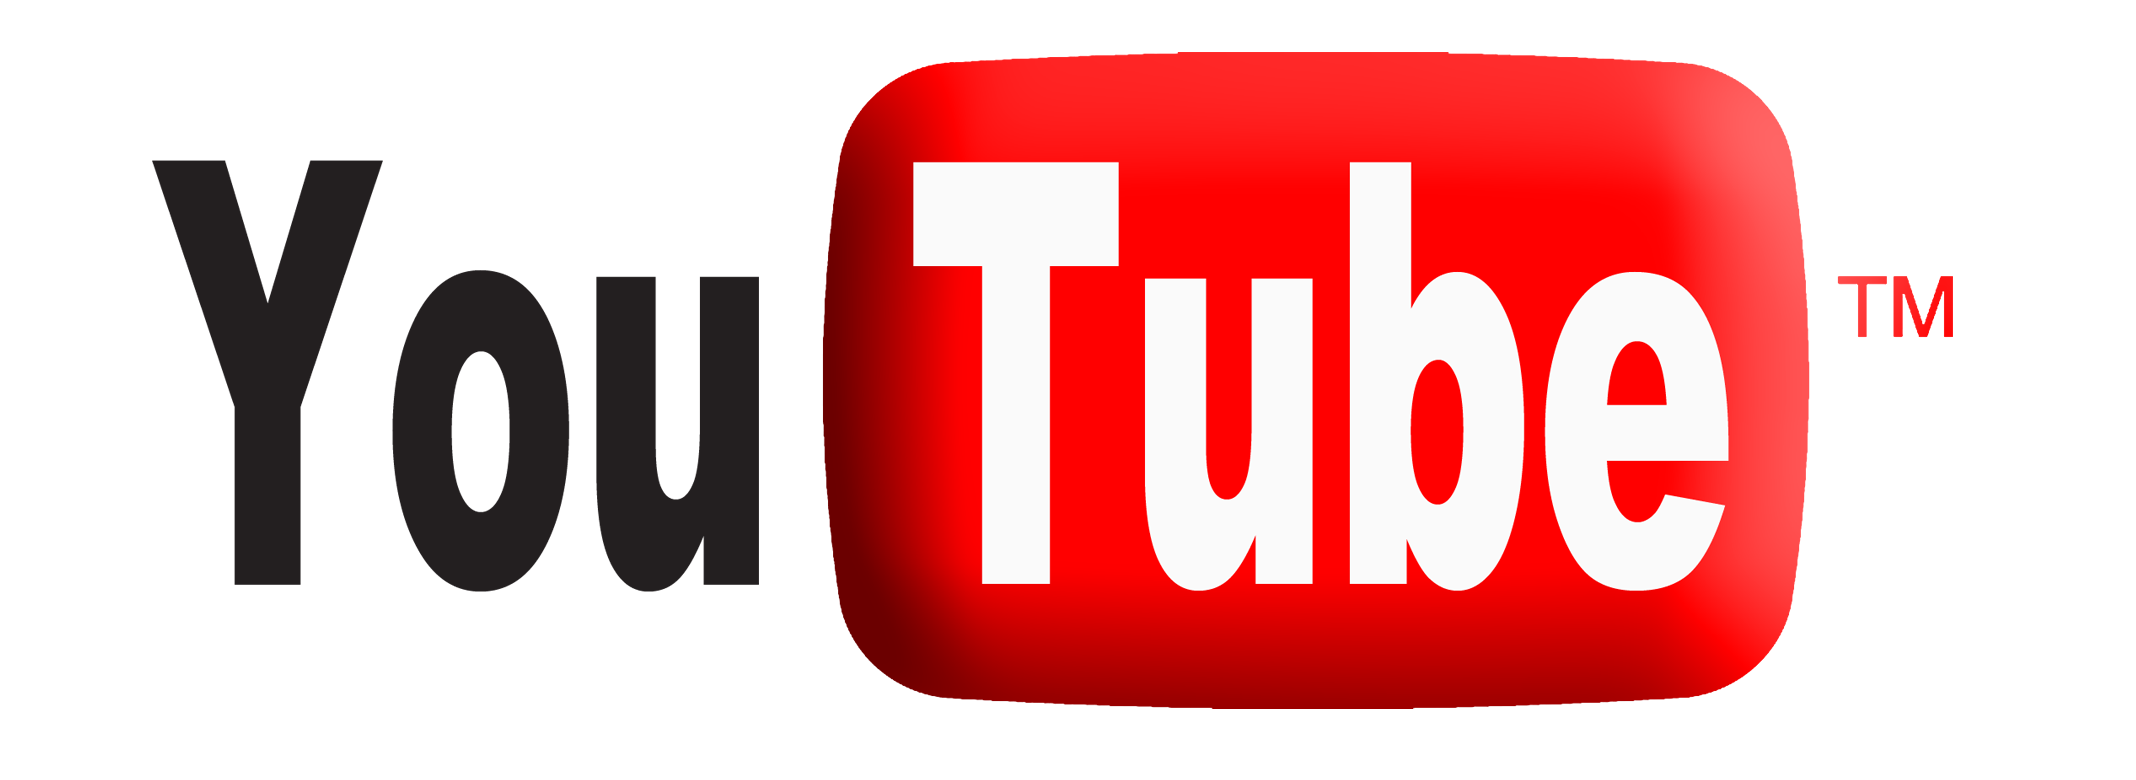 Youtube PNG - 6312